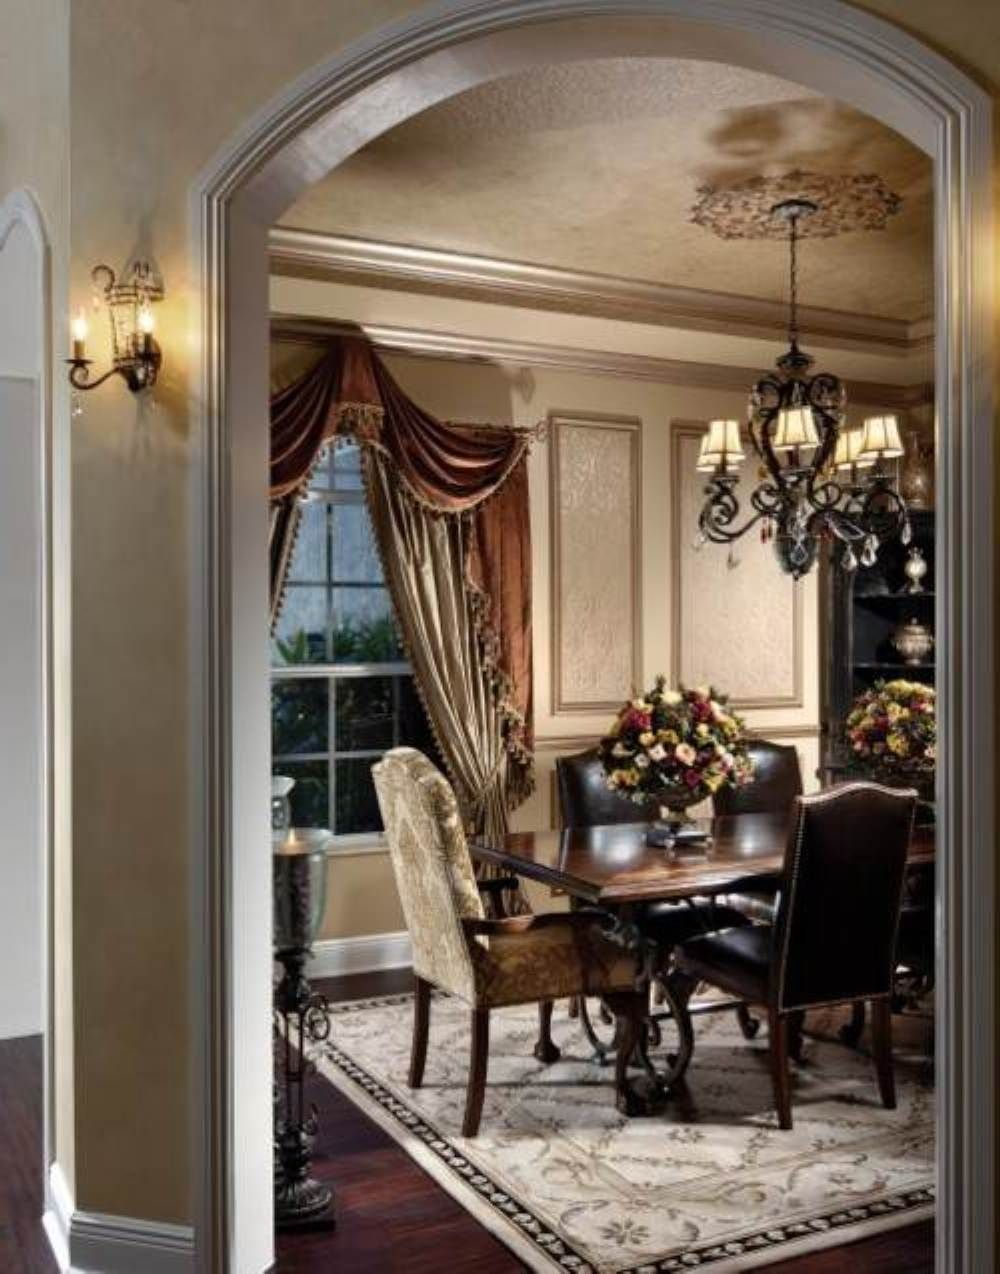 The Dining Room In A Traditional Home Is Generally A Separate Room Often With Some Built In Corner Cabinets For C Traditional Home Decorating Home Decor Decor